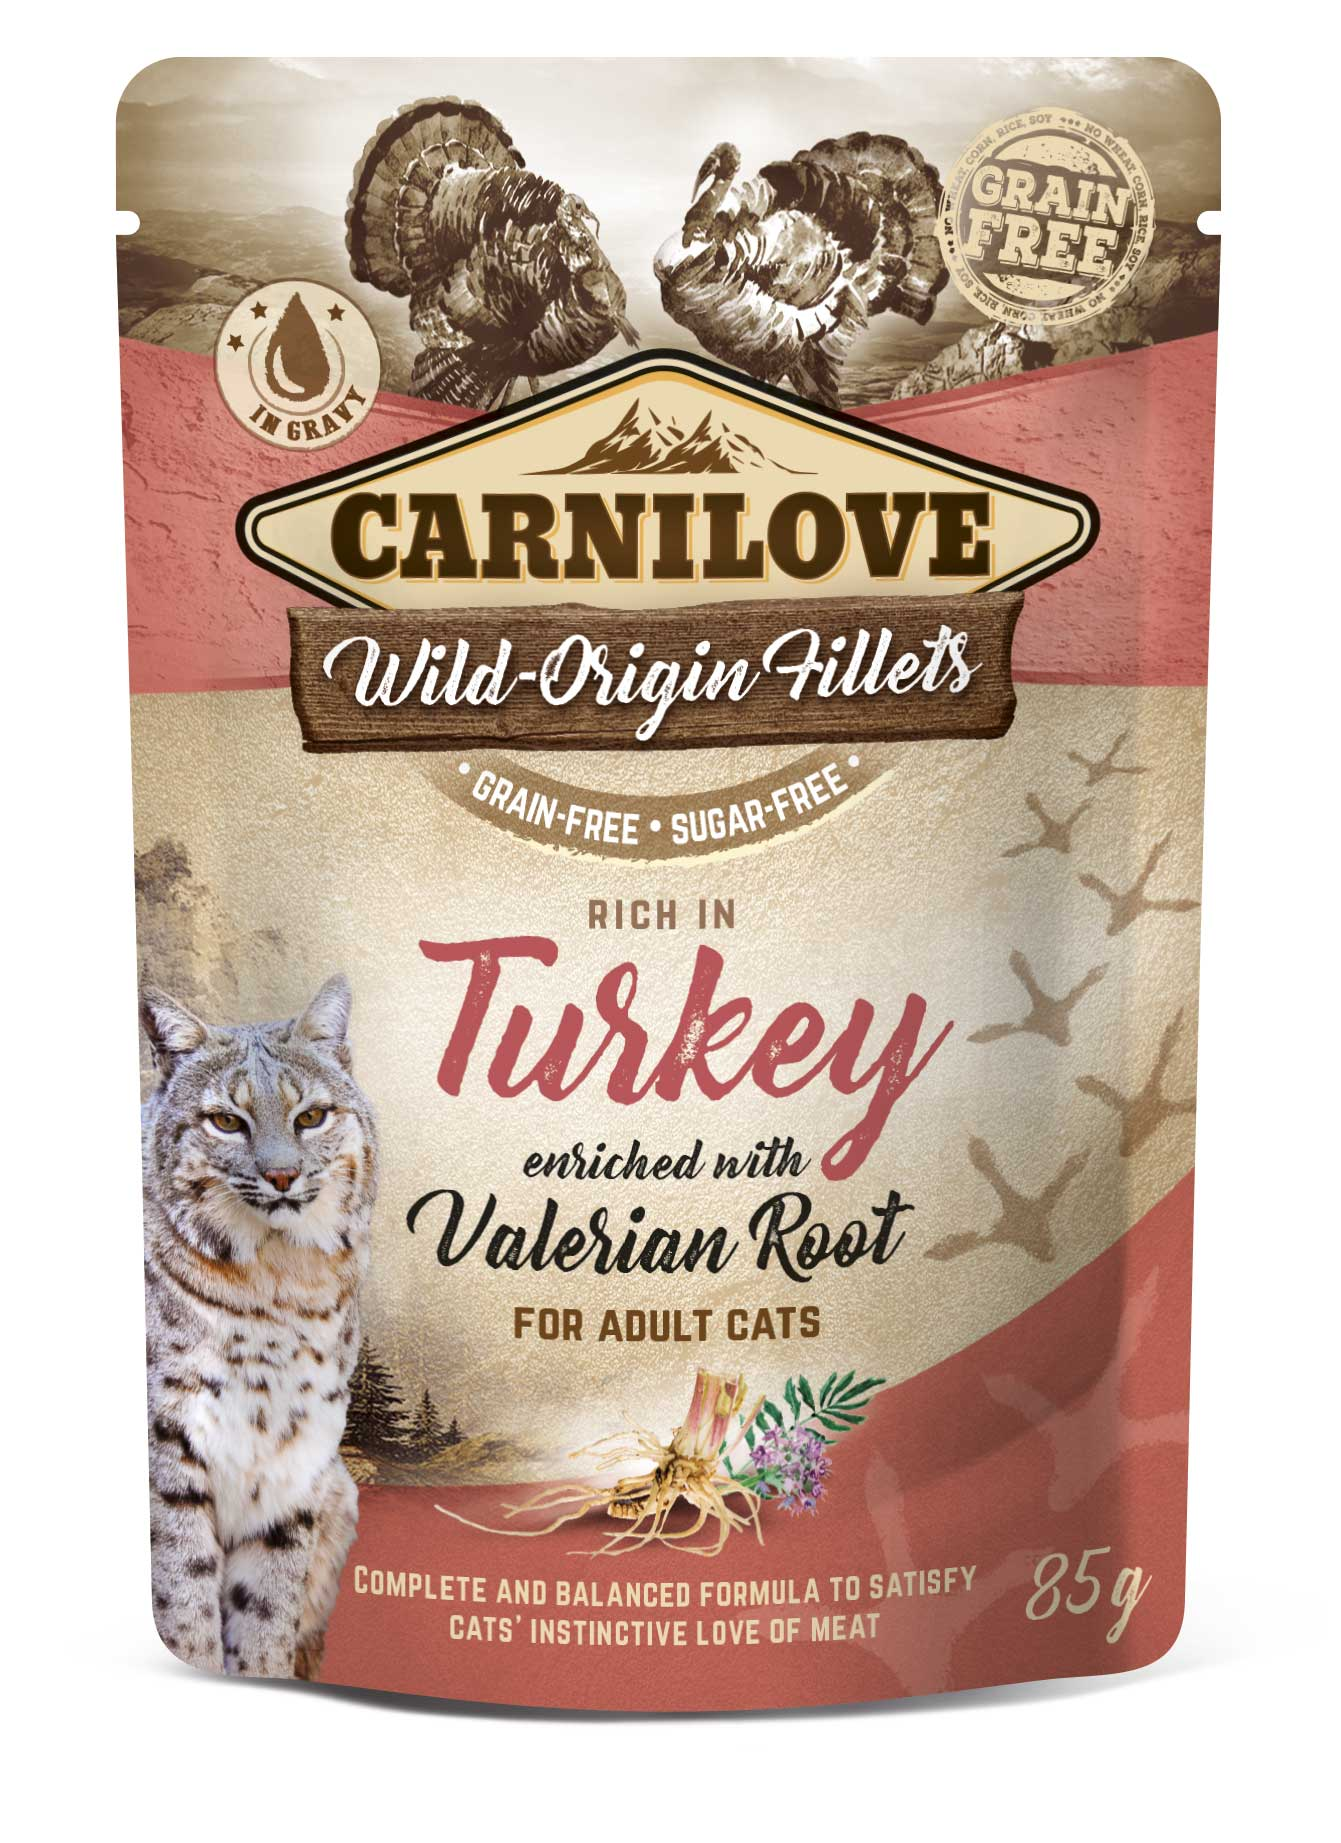 Carnilove Cat Pouch Rich in Turkey Enriched with Valerian 85g